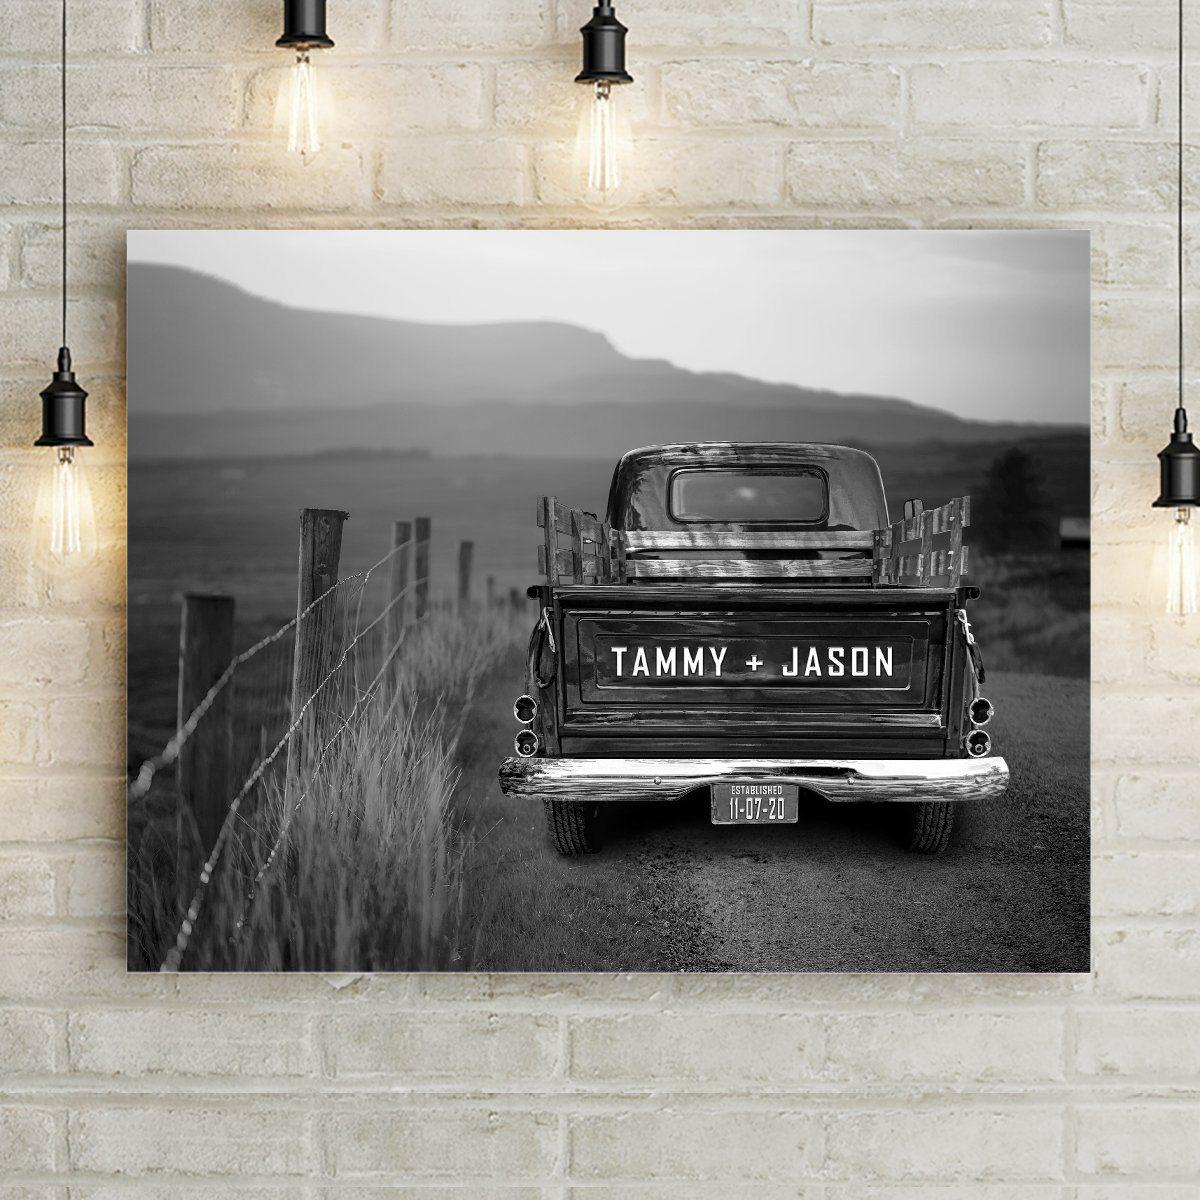 Black and white vintage truck wall art custom canvas print. Classic truck tailgate is personalized with names, and license plate is personalized with custom text and/or date. Vintage truck canvas art is on an old dirt country road landscape. Add Optional text including Thankful Grateful Blessed Wall Art with optional Broken Road Quote. Choose from medium, large, or extra large canvas wall art sizes. Pefect gift for classic truck lover.